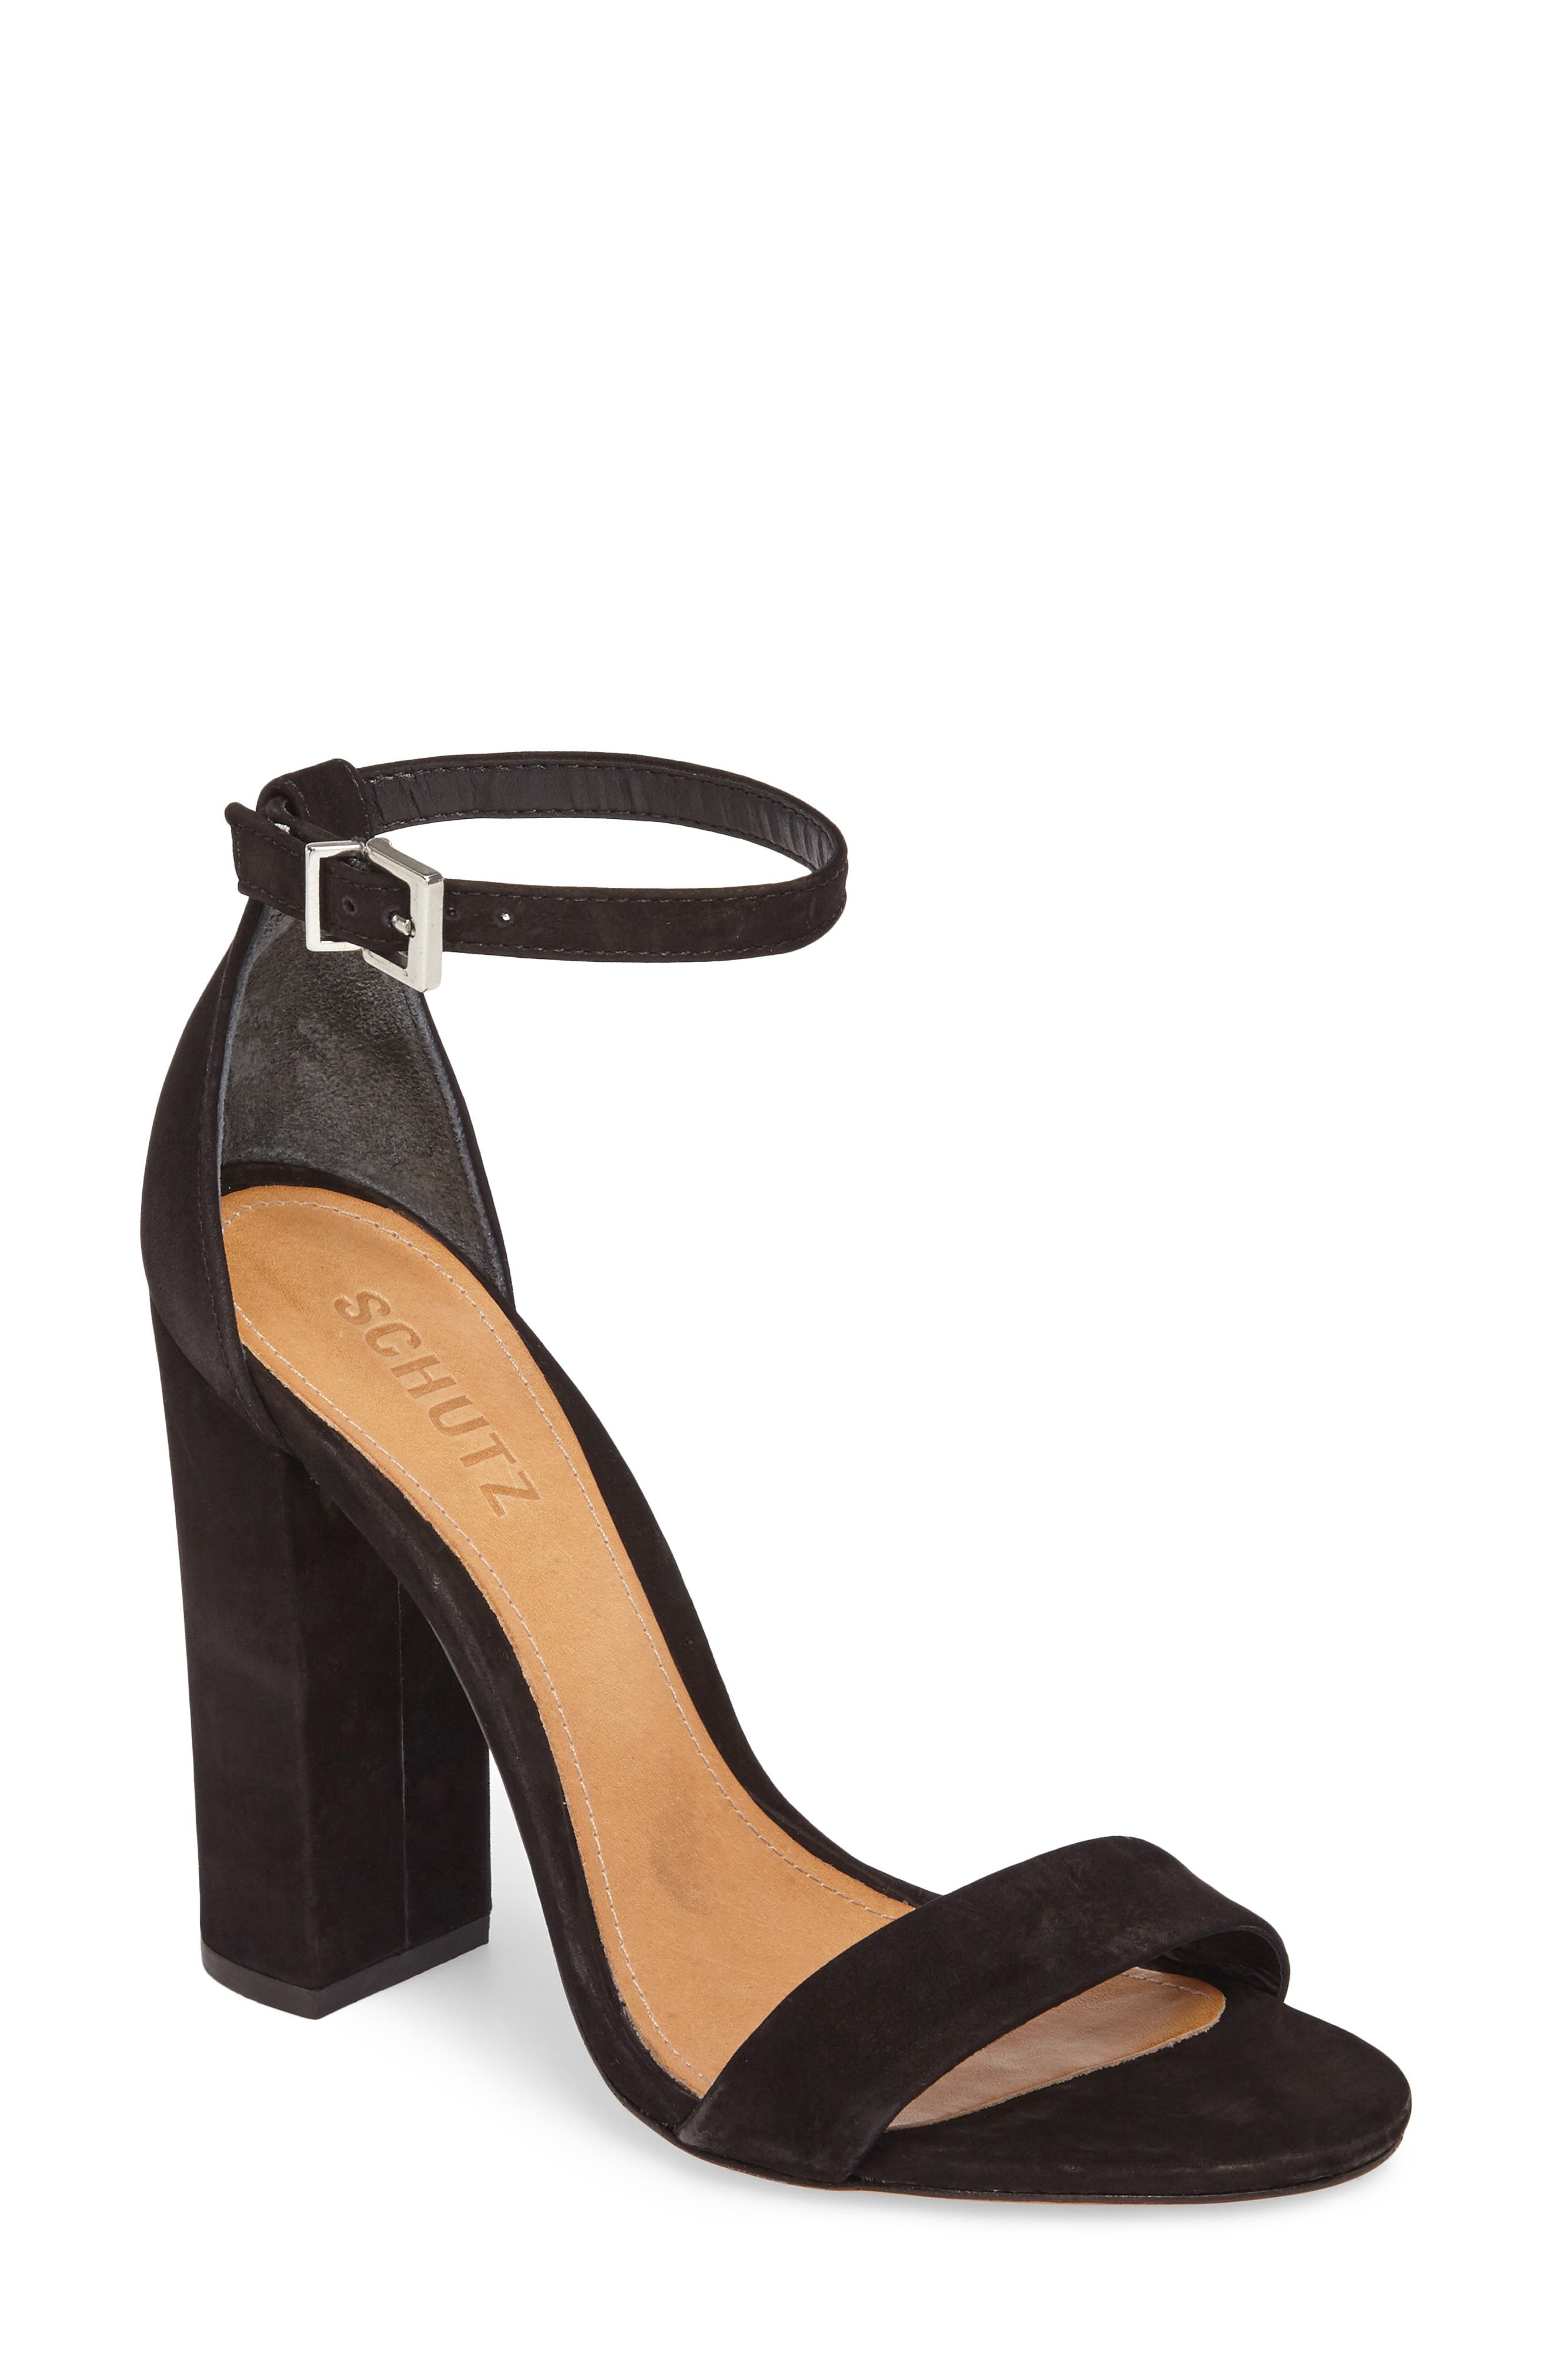 Enida Strappy Sandal,                         Main,                         color, Black Nubuck Leather